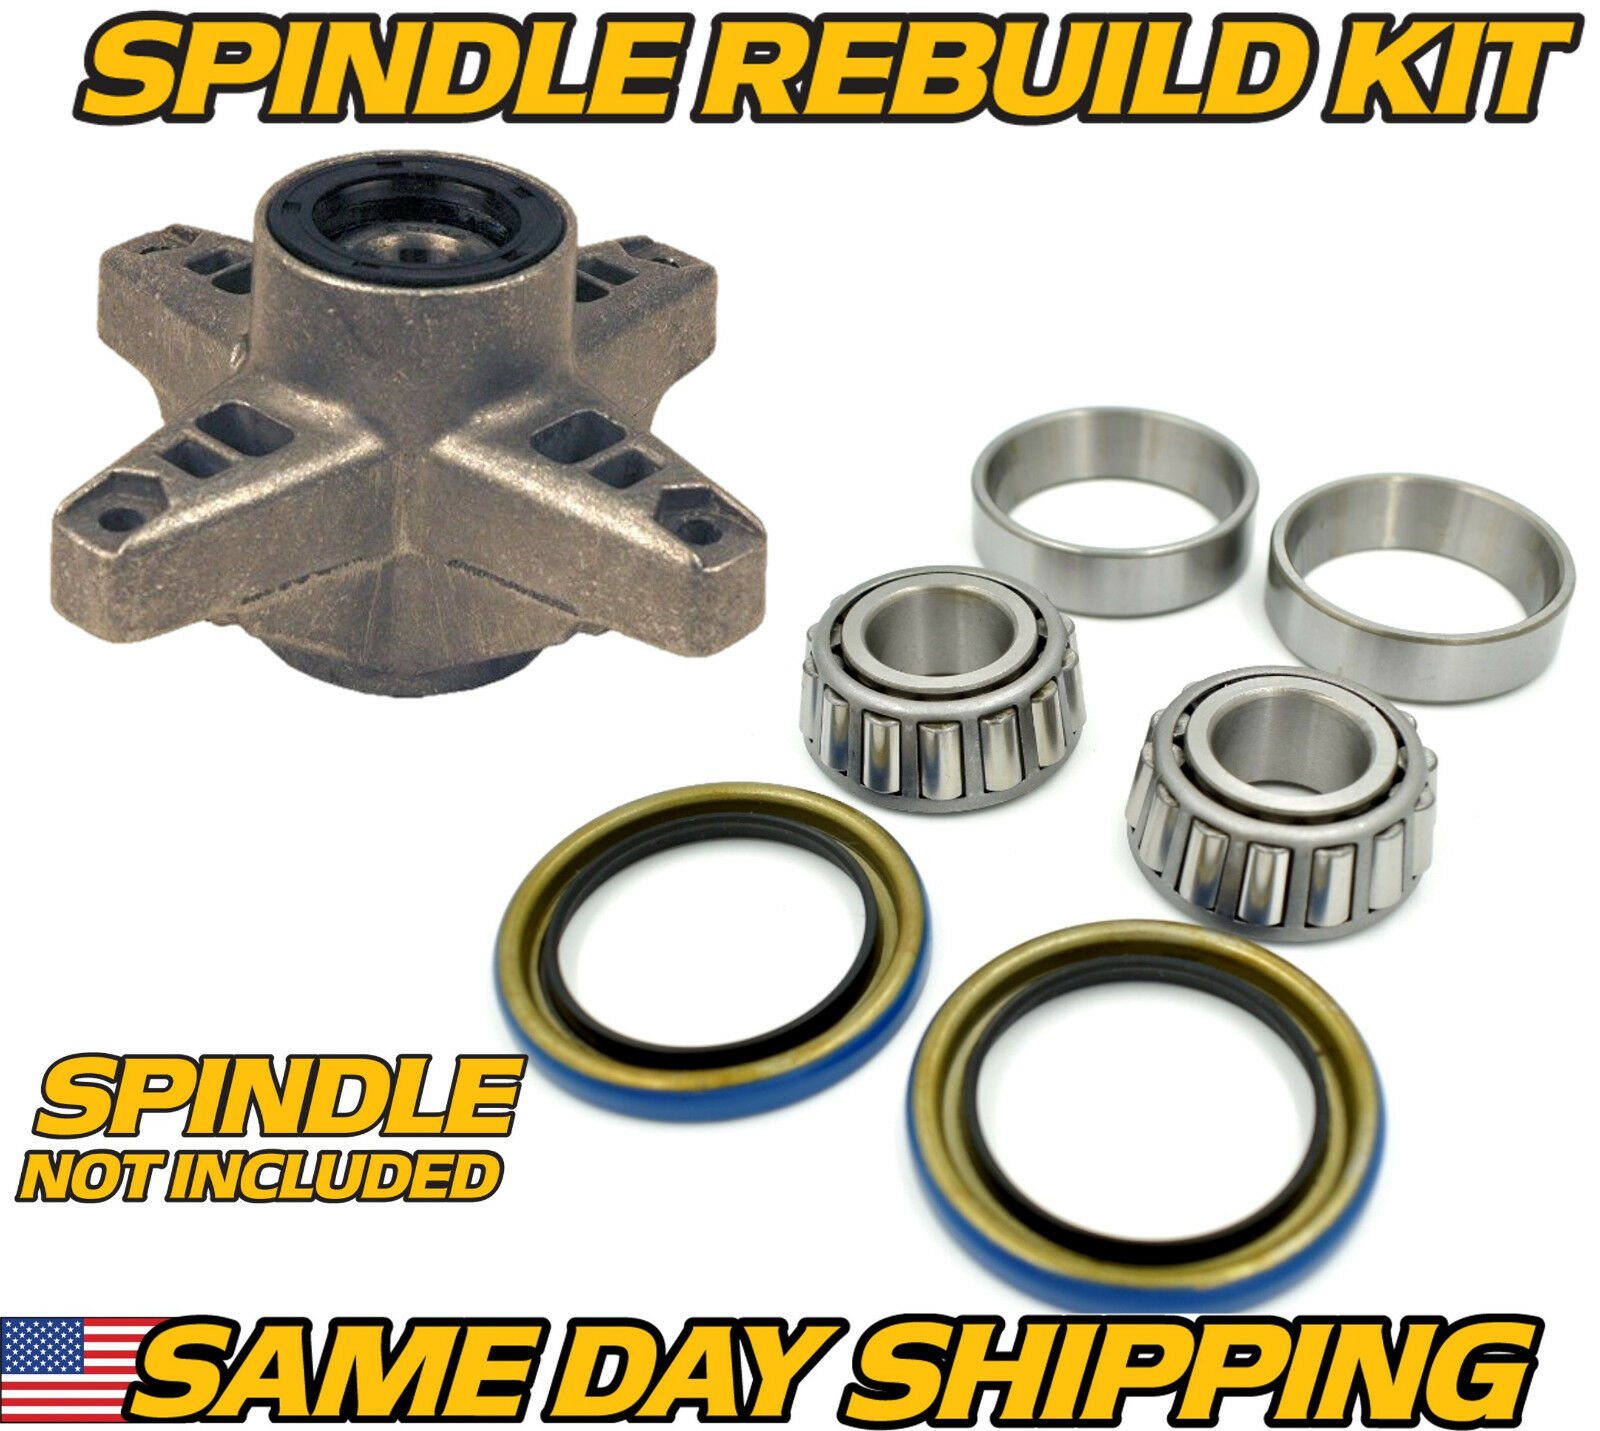 Gen CUB CADET Tune Up Kit for 2130 2135 2150 2155 2166 LT2138